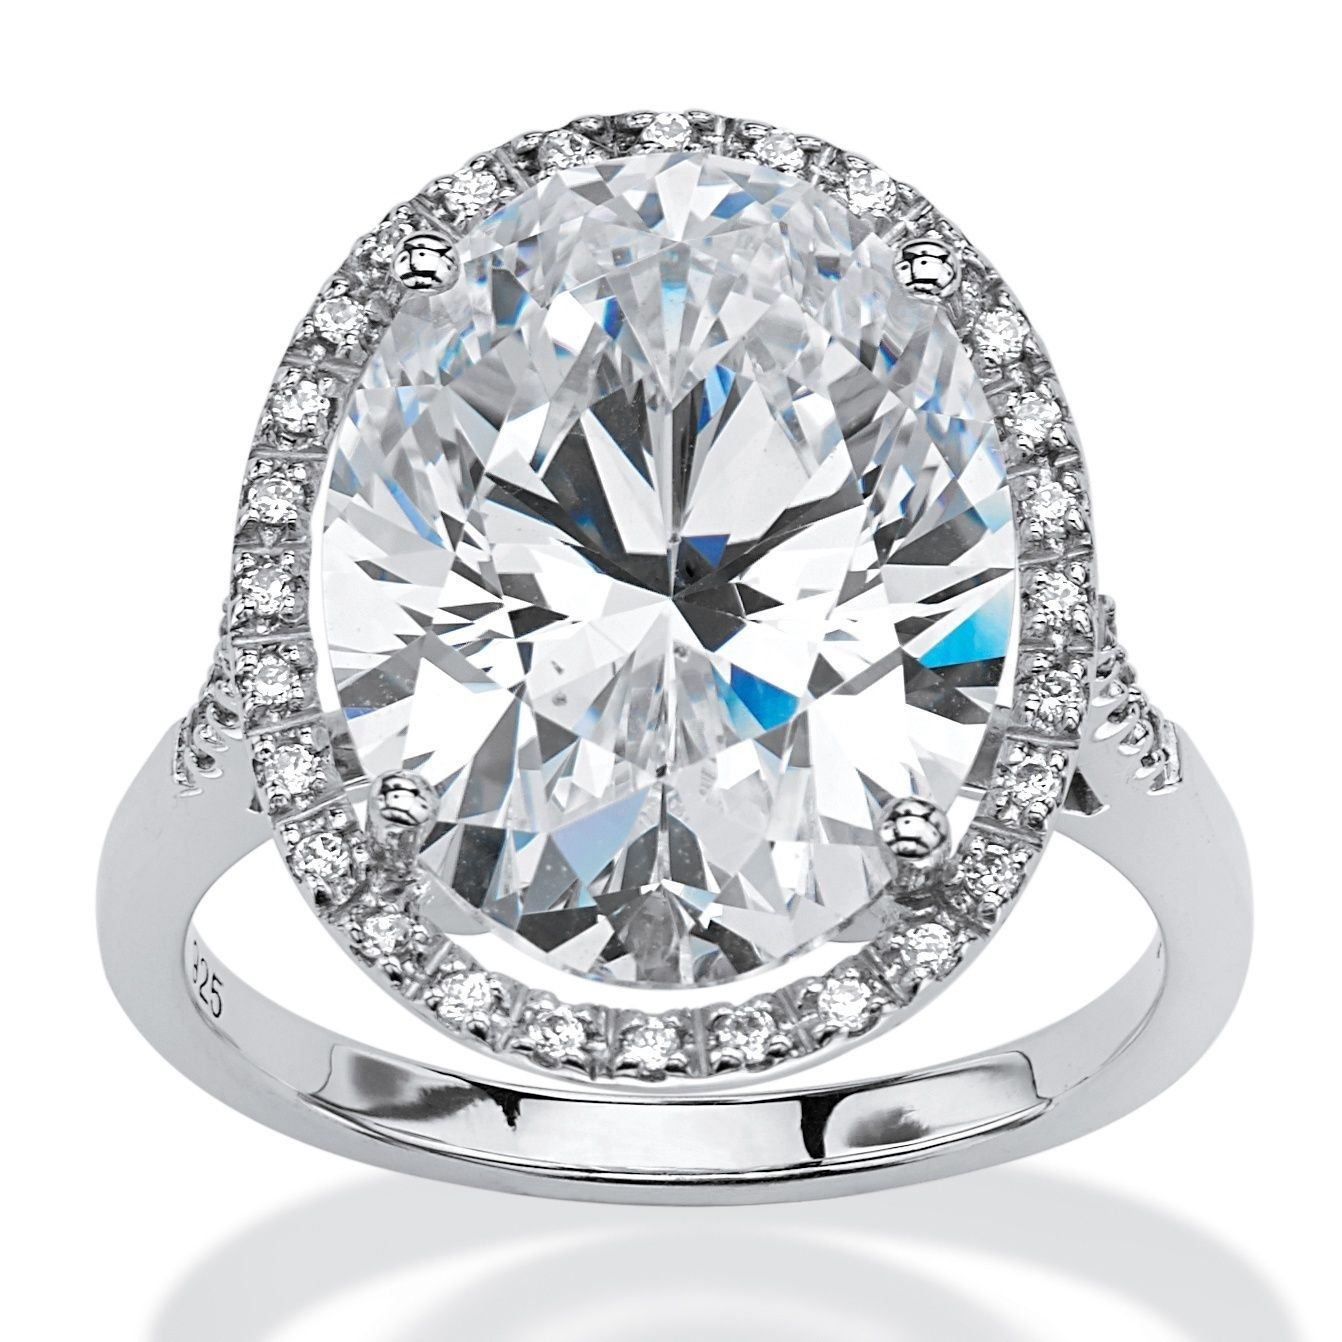 Platinum Over Sterling Silver Cubic Zirconia Halo Engagement Ring White Silver Engagement Rings Engagement Rings Cubic Zirconia Engagement Rings